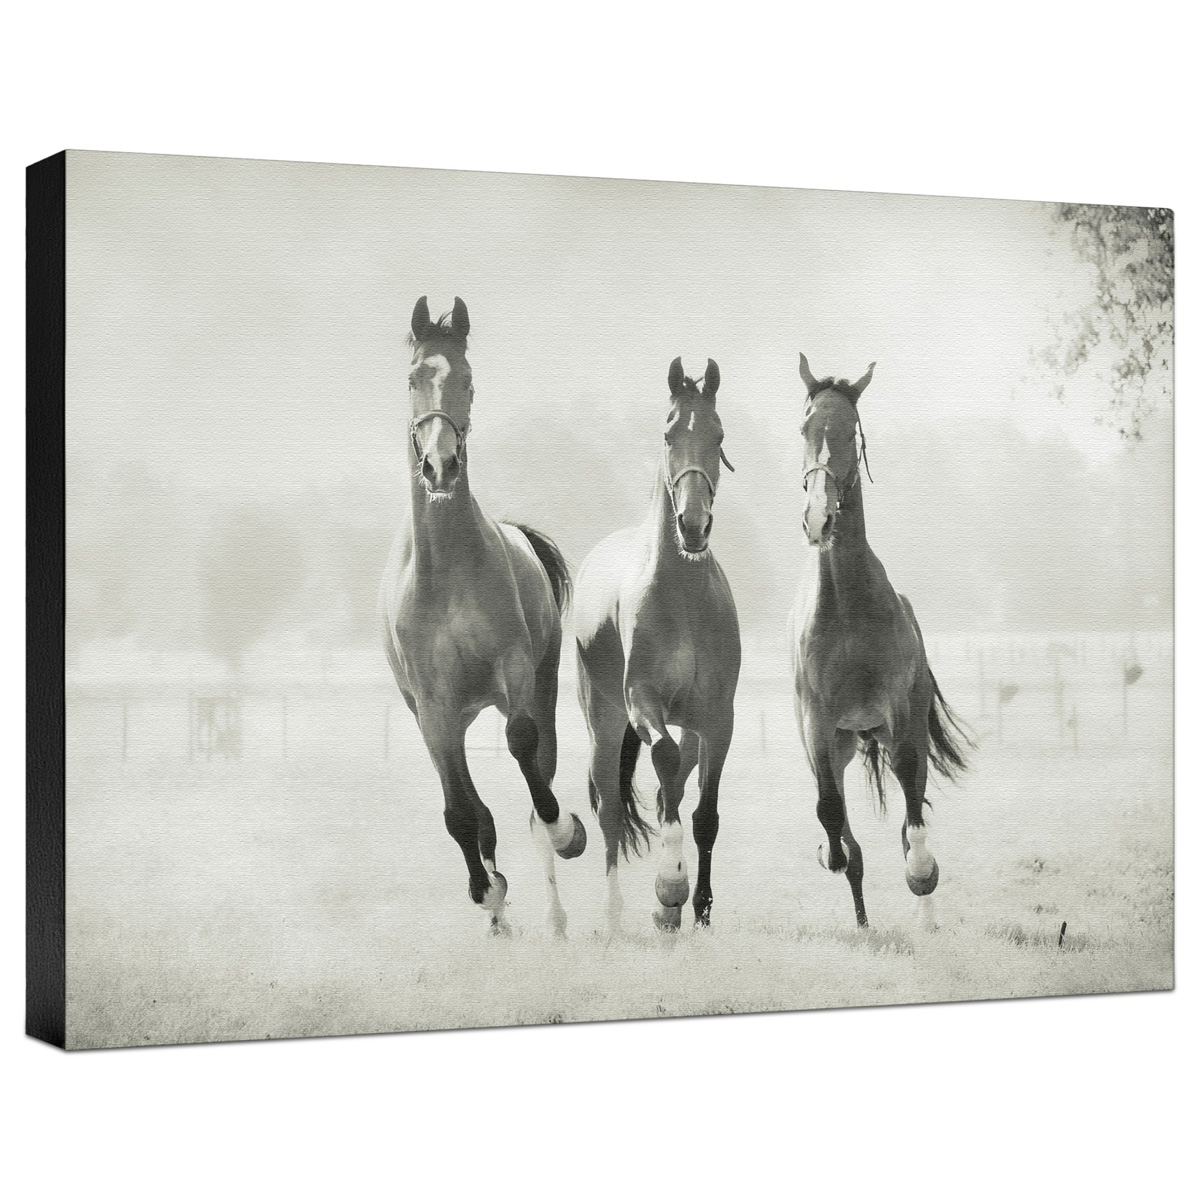 Arriving Gallery Wrapped Canvas